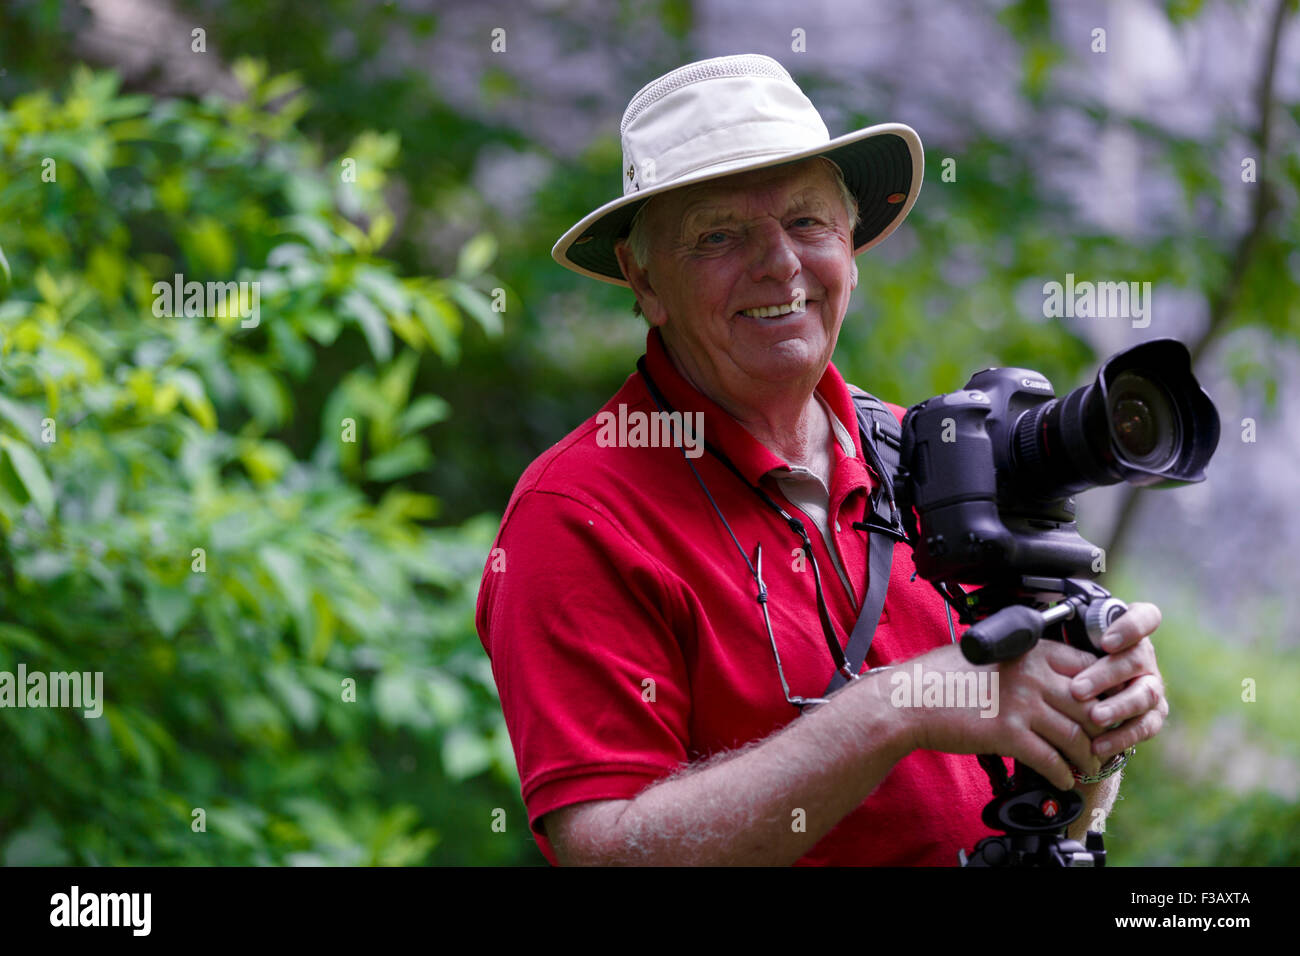 a26c0327fe8 Senior male wearing Tilley Hat holding camera smiling at photographer  blurred foliage background - Stock Image